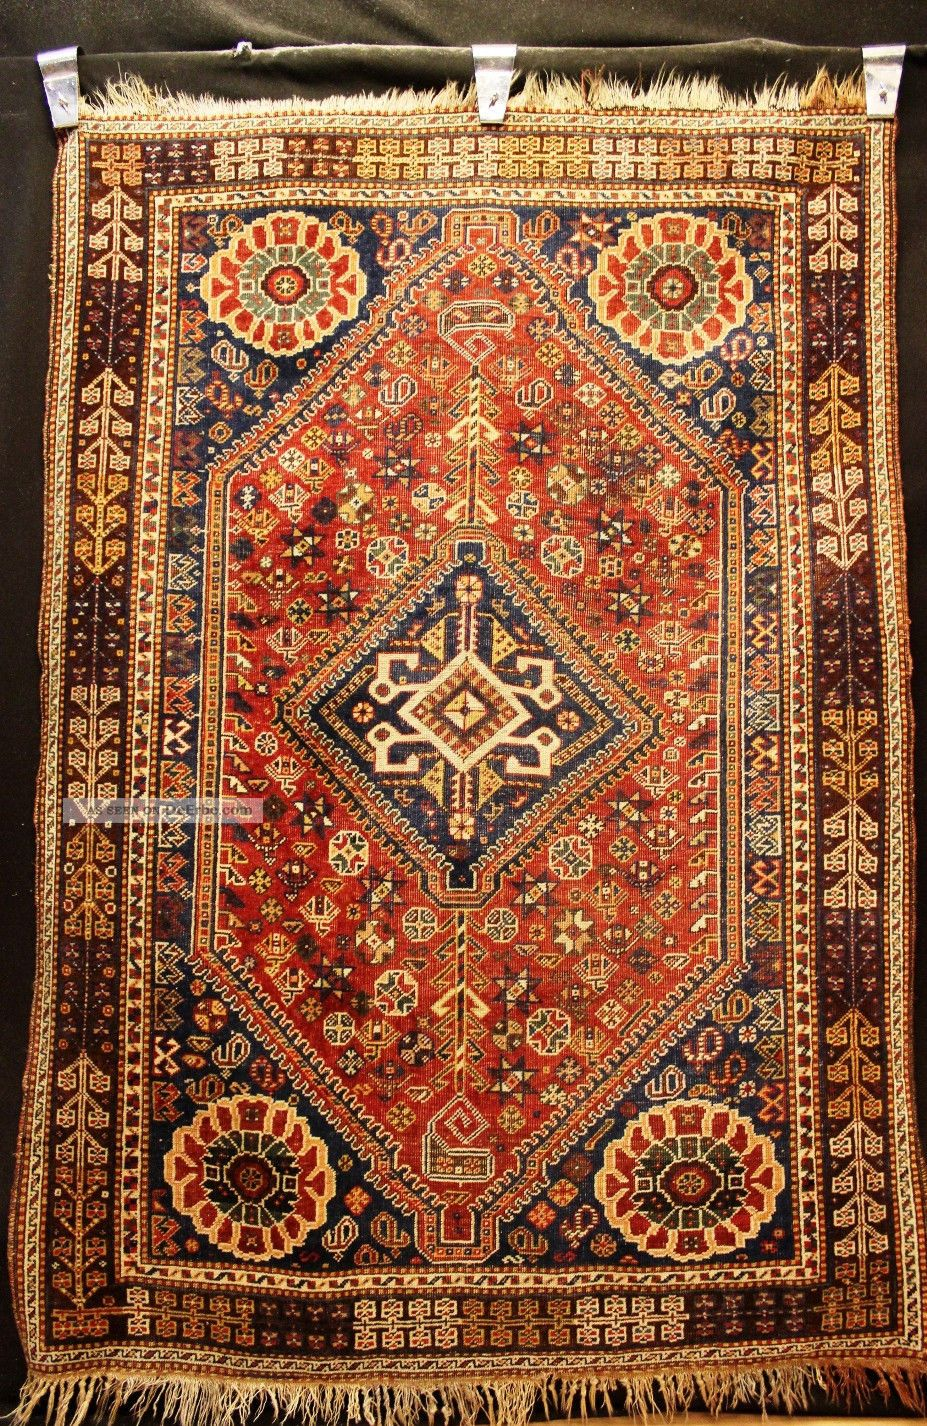 70 80 jahre antiker khamsee gashgai kazak teppich old rug carpet 195x135cm. Black Bedroom Furniture Sets. Home Design Ideas